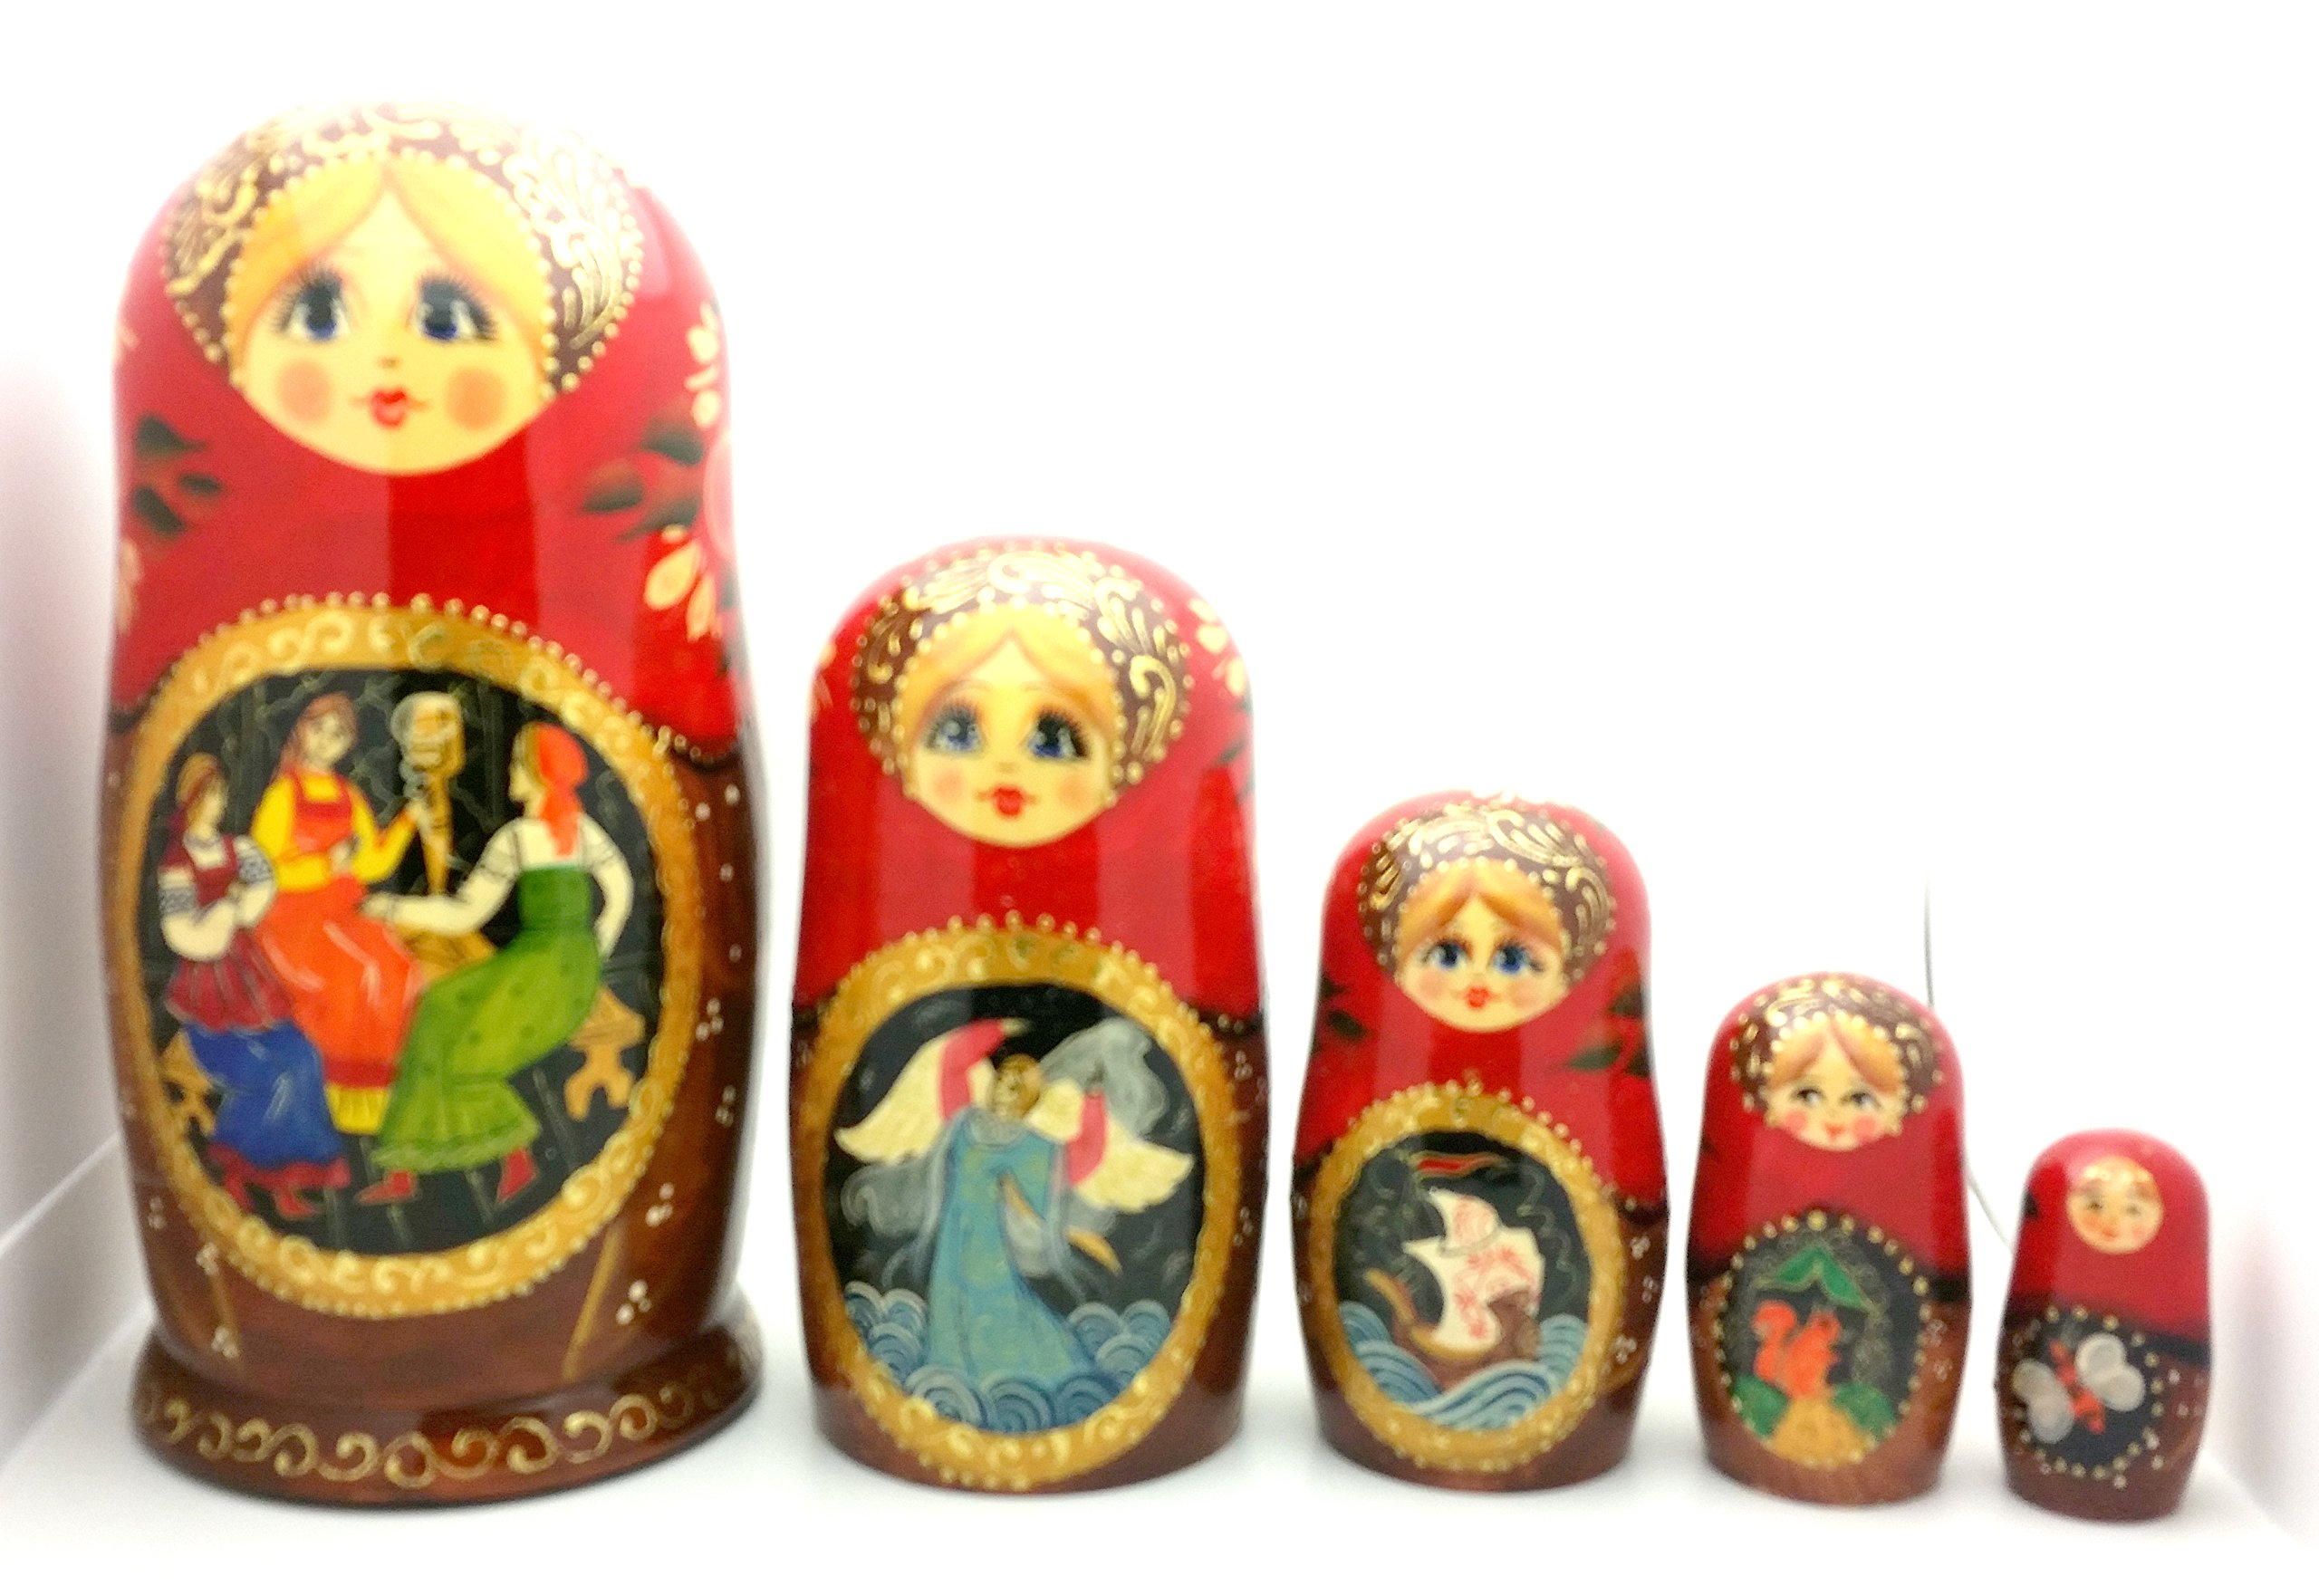 Tsar Saltan fairy tale by Pushkin Russian Nesting doll Hand Carved Hand Painted 5 piece Set 7'' tall by BuyRussianGifts (Image #2)